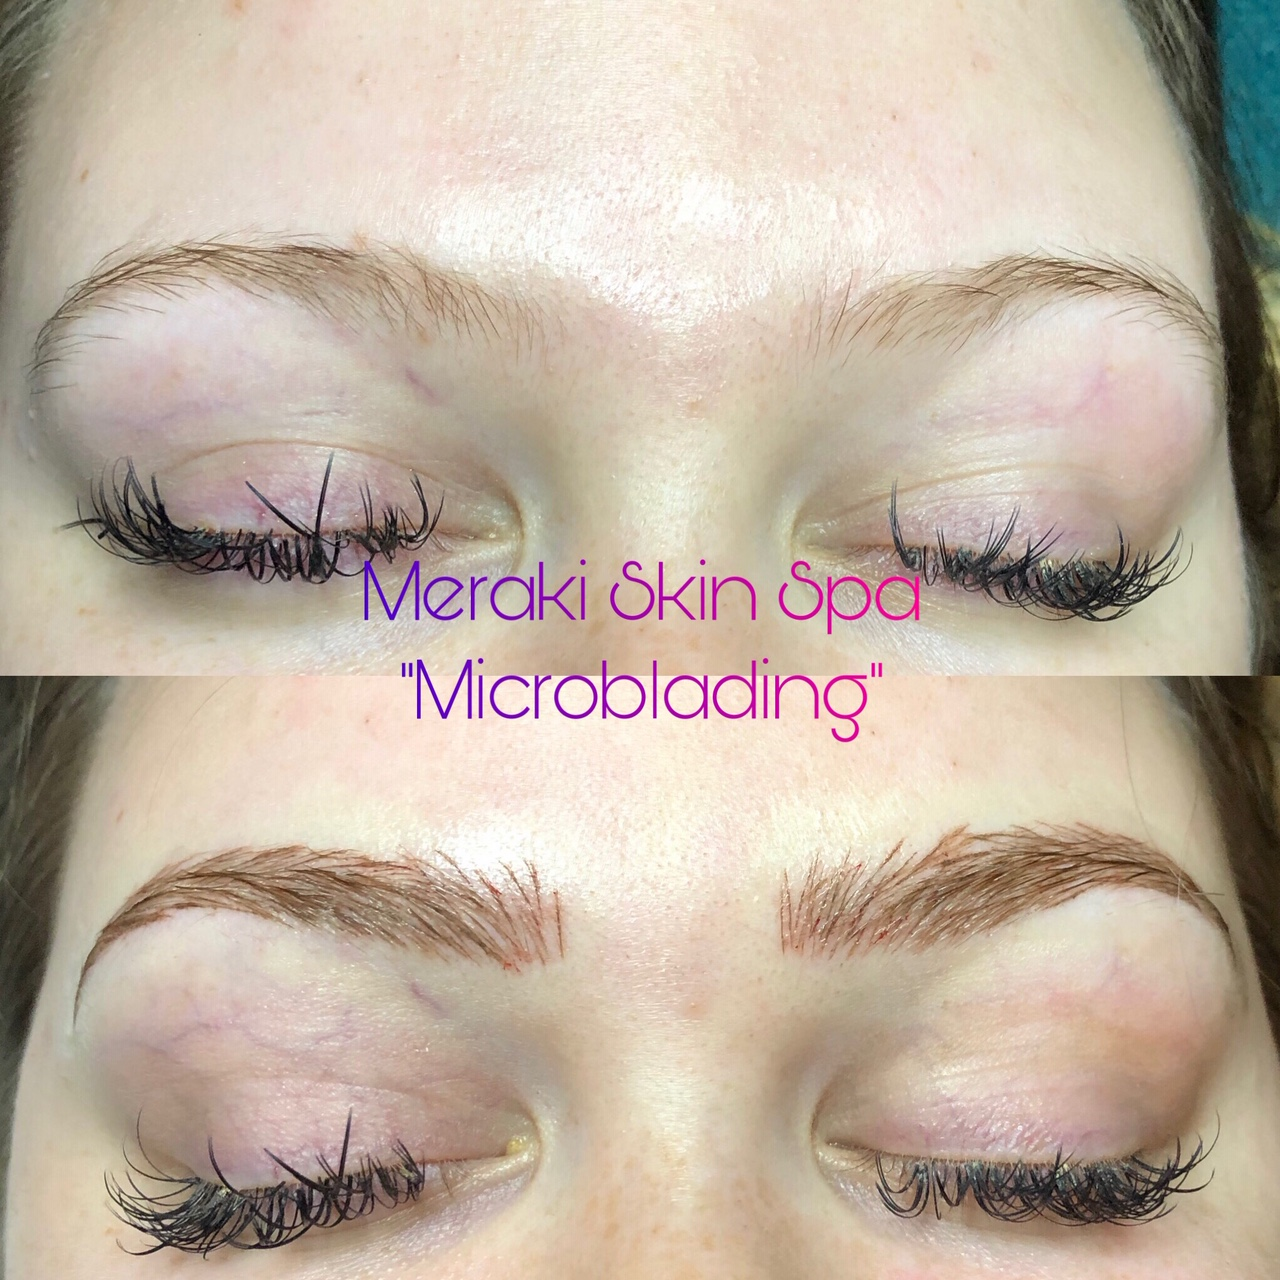 alt text permanent tattooed eyebrows microblading meridian idaho